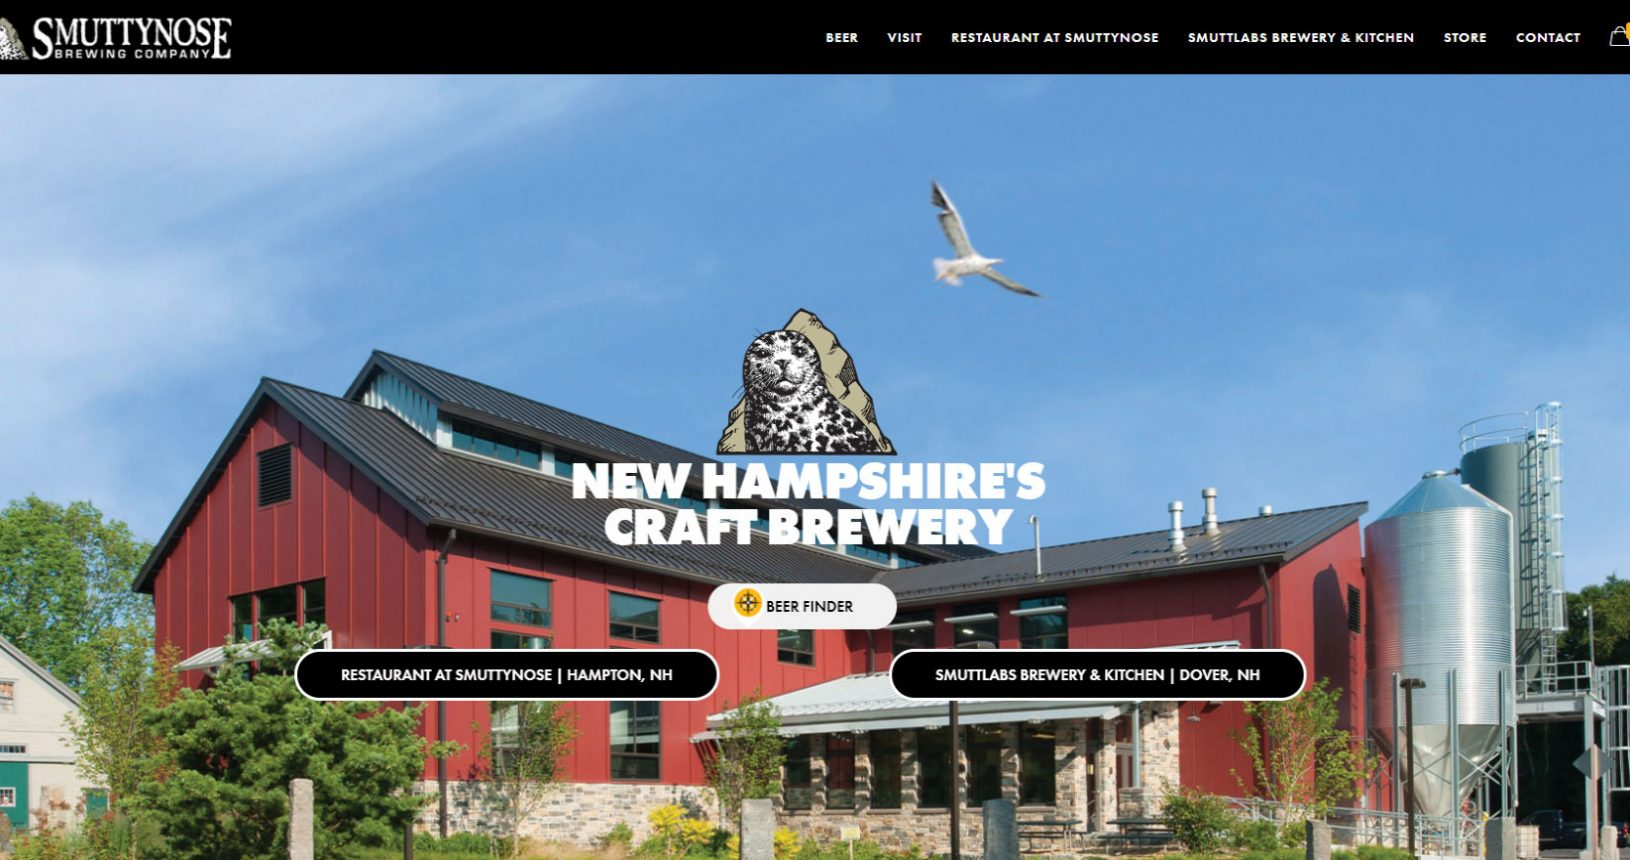 Smuttynose-Brewing-Co-New-Hampshire-s-Craft-Brewery-–-New-Hampshire-s-Craft-Brewery